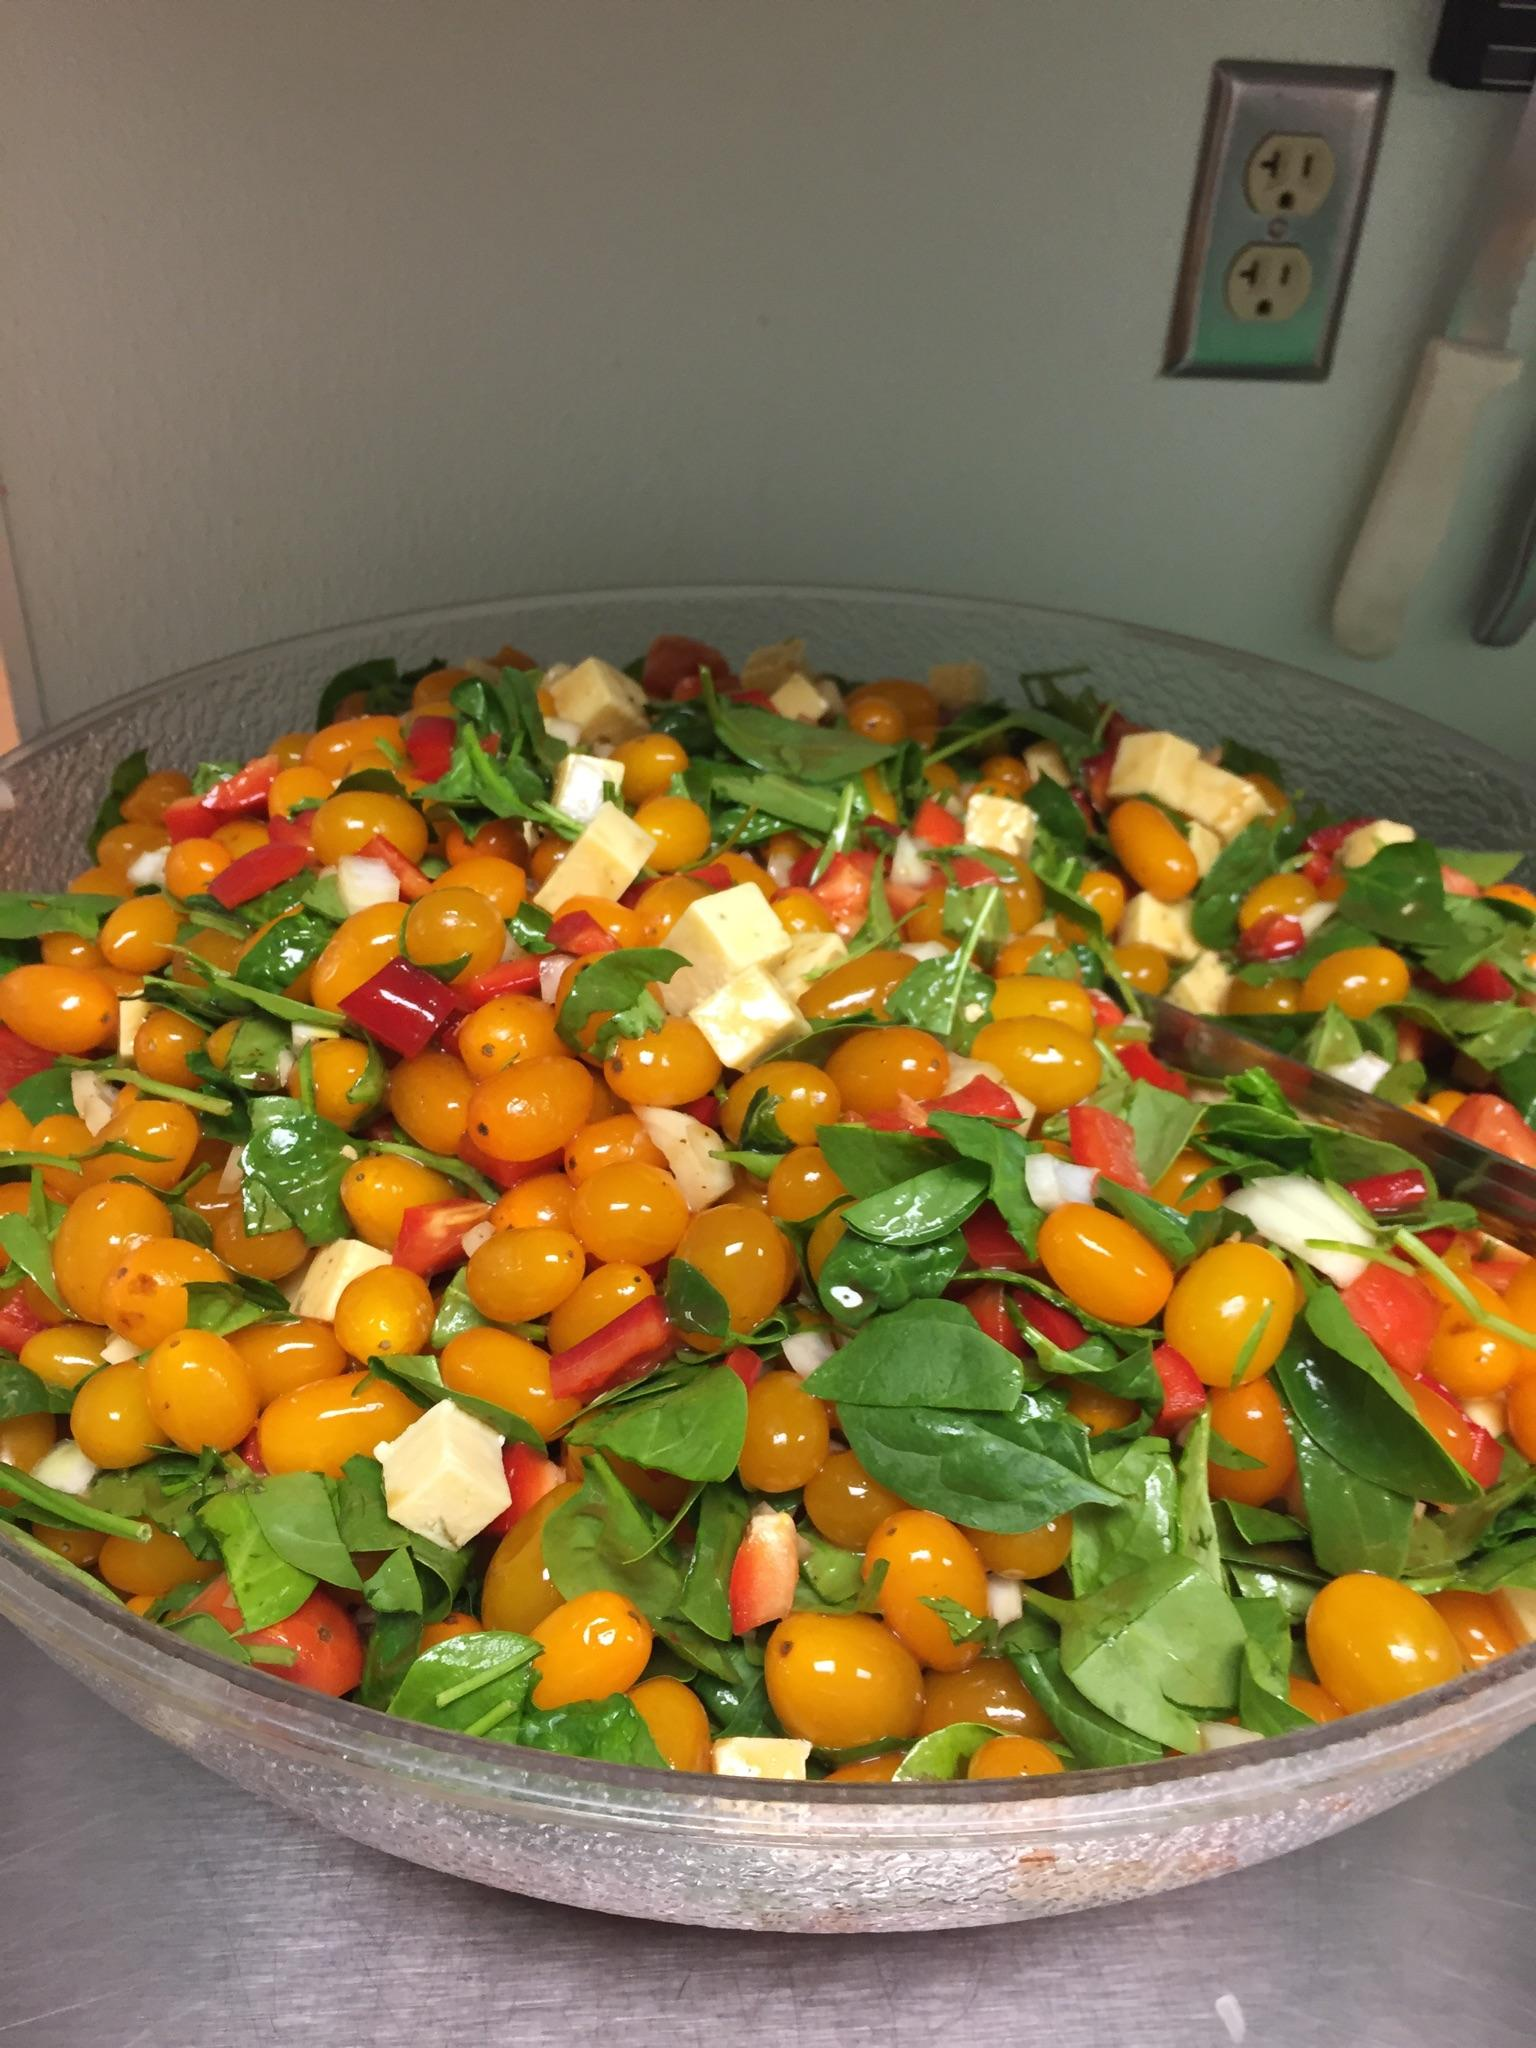 Colorful salads are a typical part of the nutritious meals we serve.